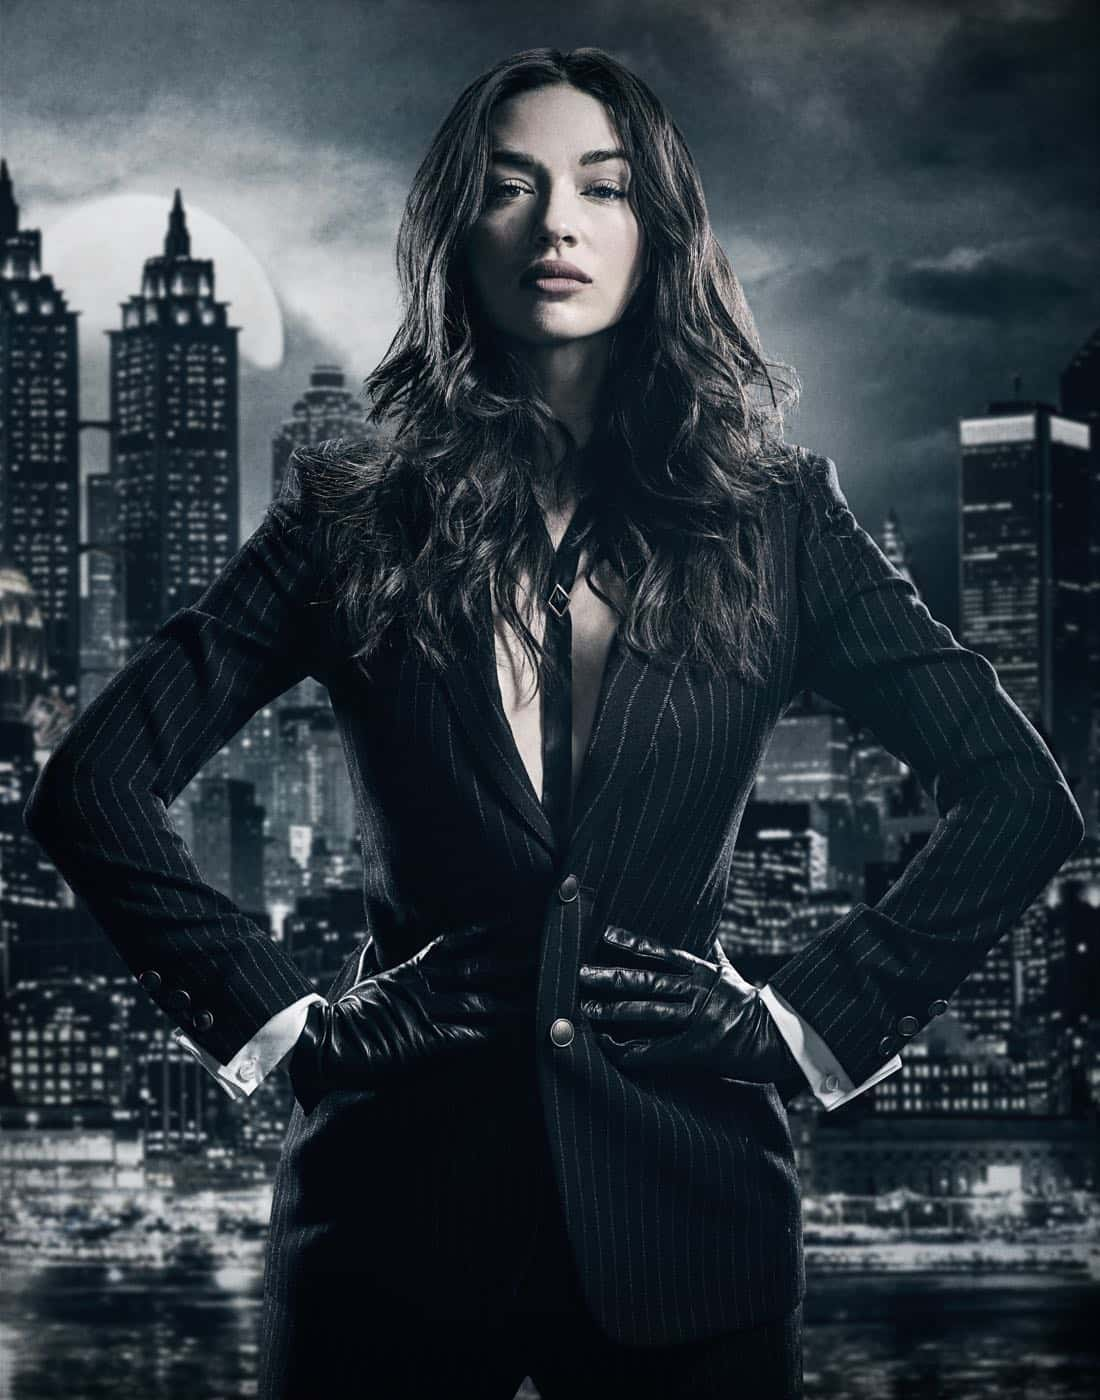 Crystal Reed. Season 4 of GOTHAM